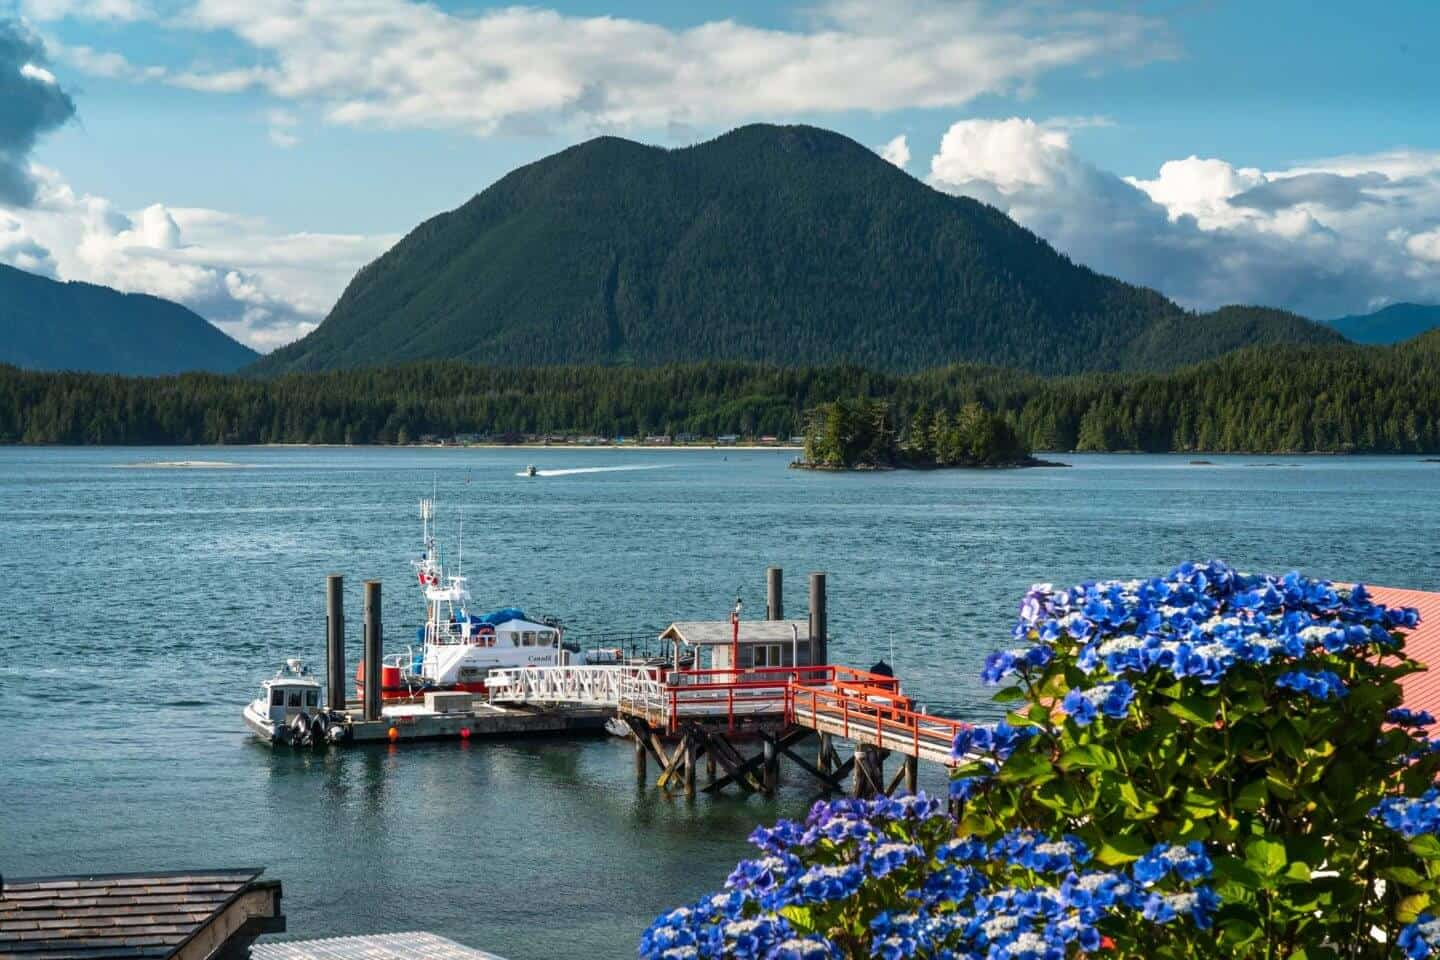 A view of the docks of Tofino with the Clayoquot Sounds behind.